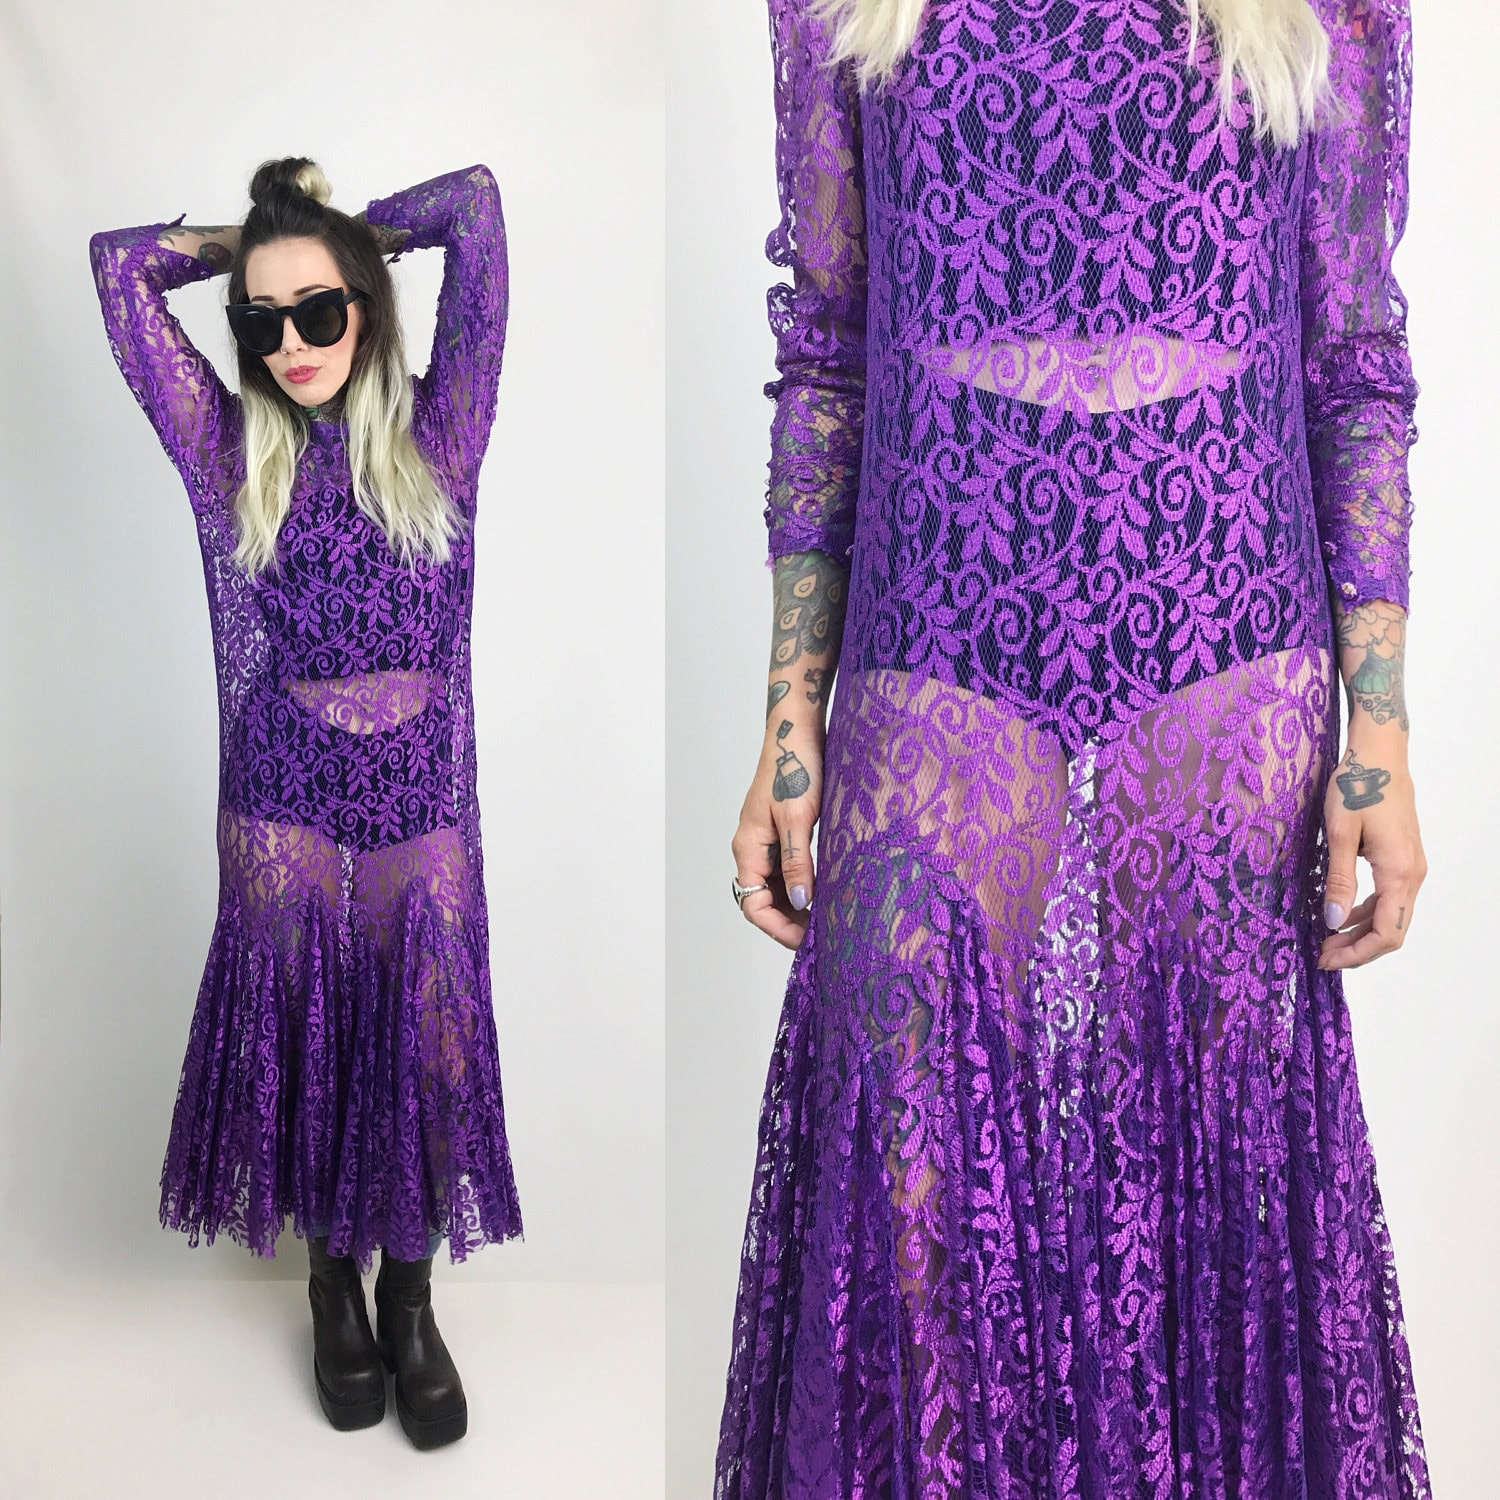 80s Sheer Lace Maxi Dress Size 46 Small Long Sleeve